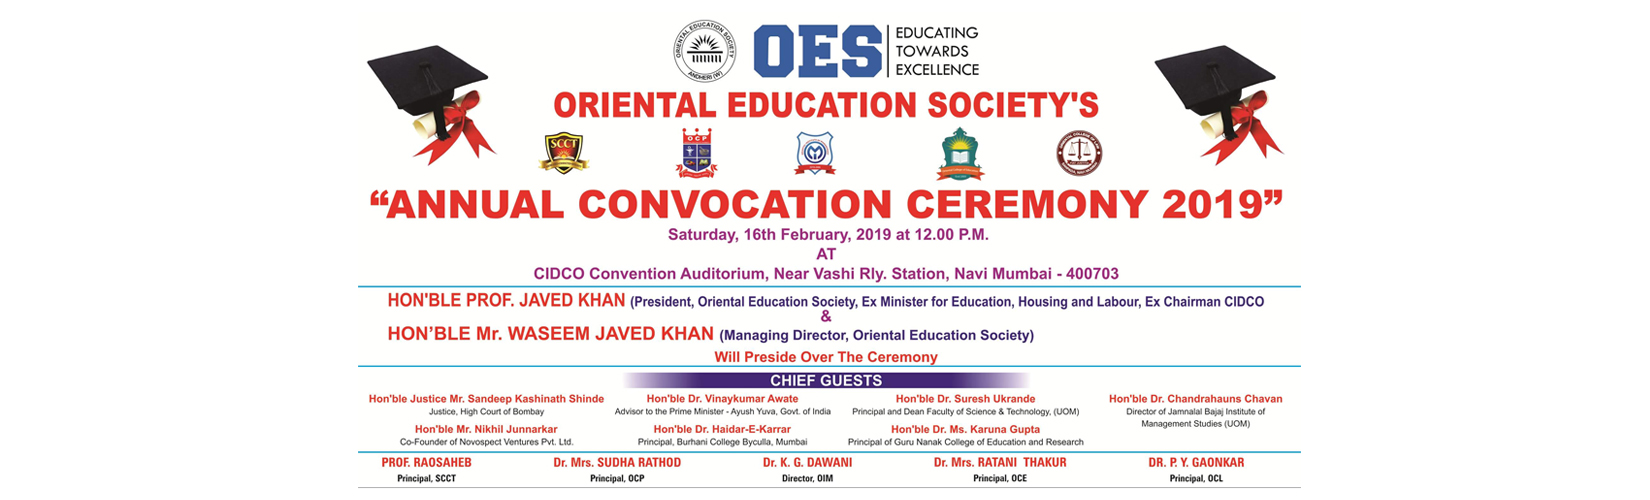 CONVOCATION-new-2019